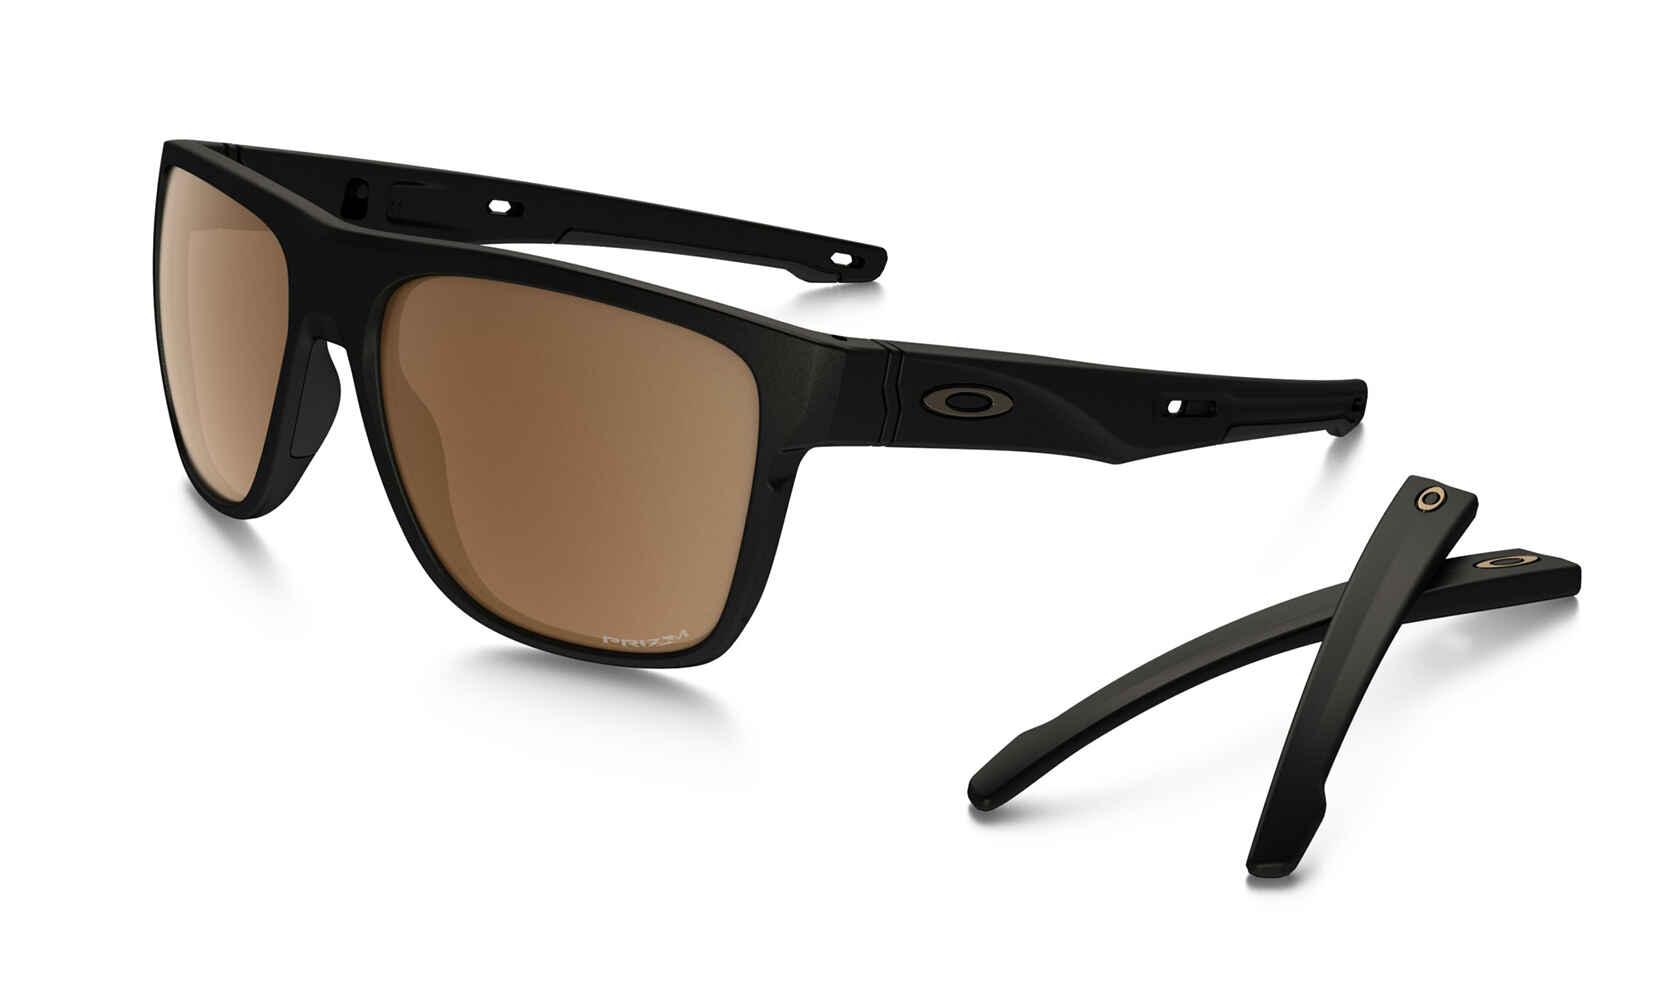 734aaed6545 OAKLEY CROSSRANGE XL - MATTE BLACK   PRIZM TUNGSTEN POLARIZED -  Mens-Accessories   Sequence Surf Shop - OAKLEY ALL